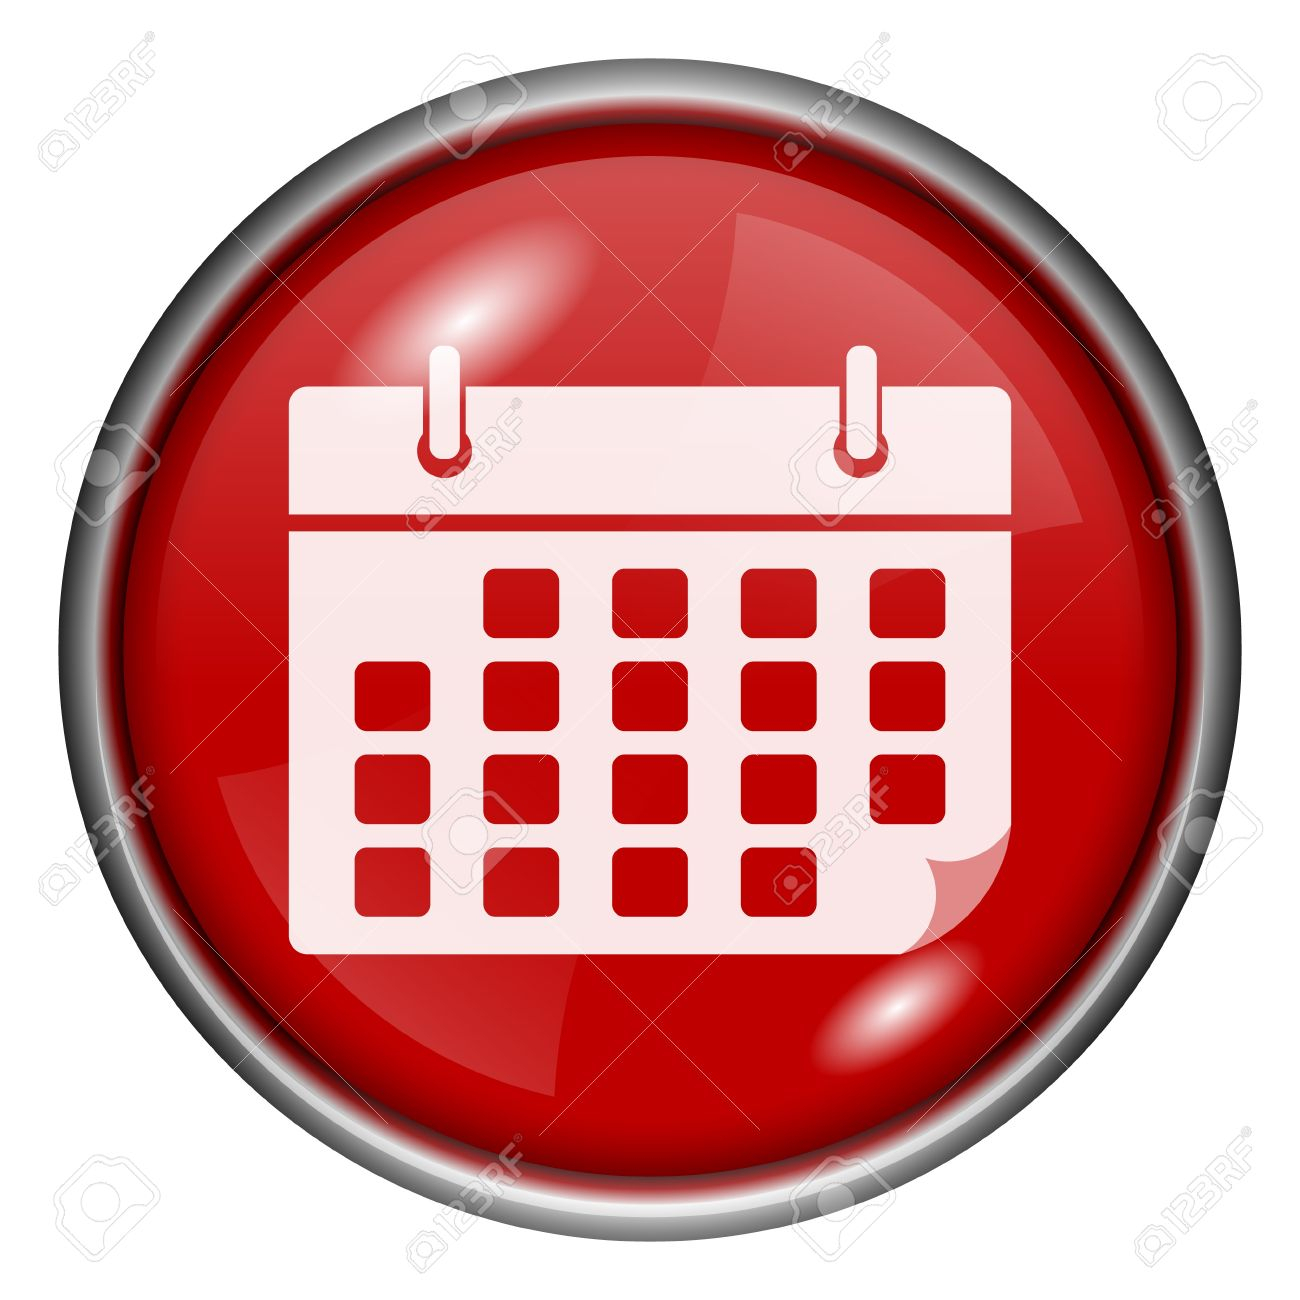 Red Round Glossy Calendar Icon With White Design On Red Background intended for Round Calendar Icon